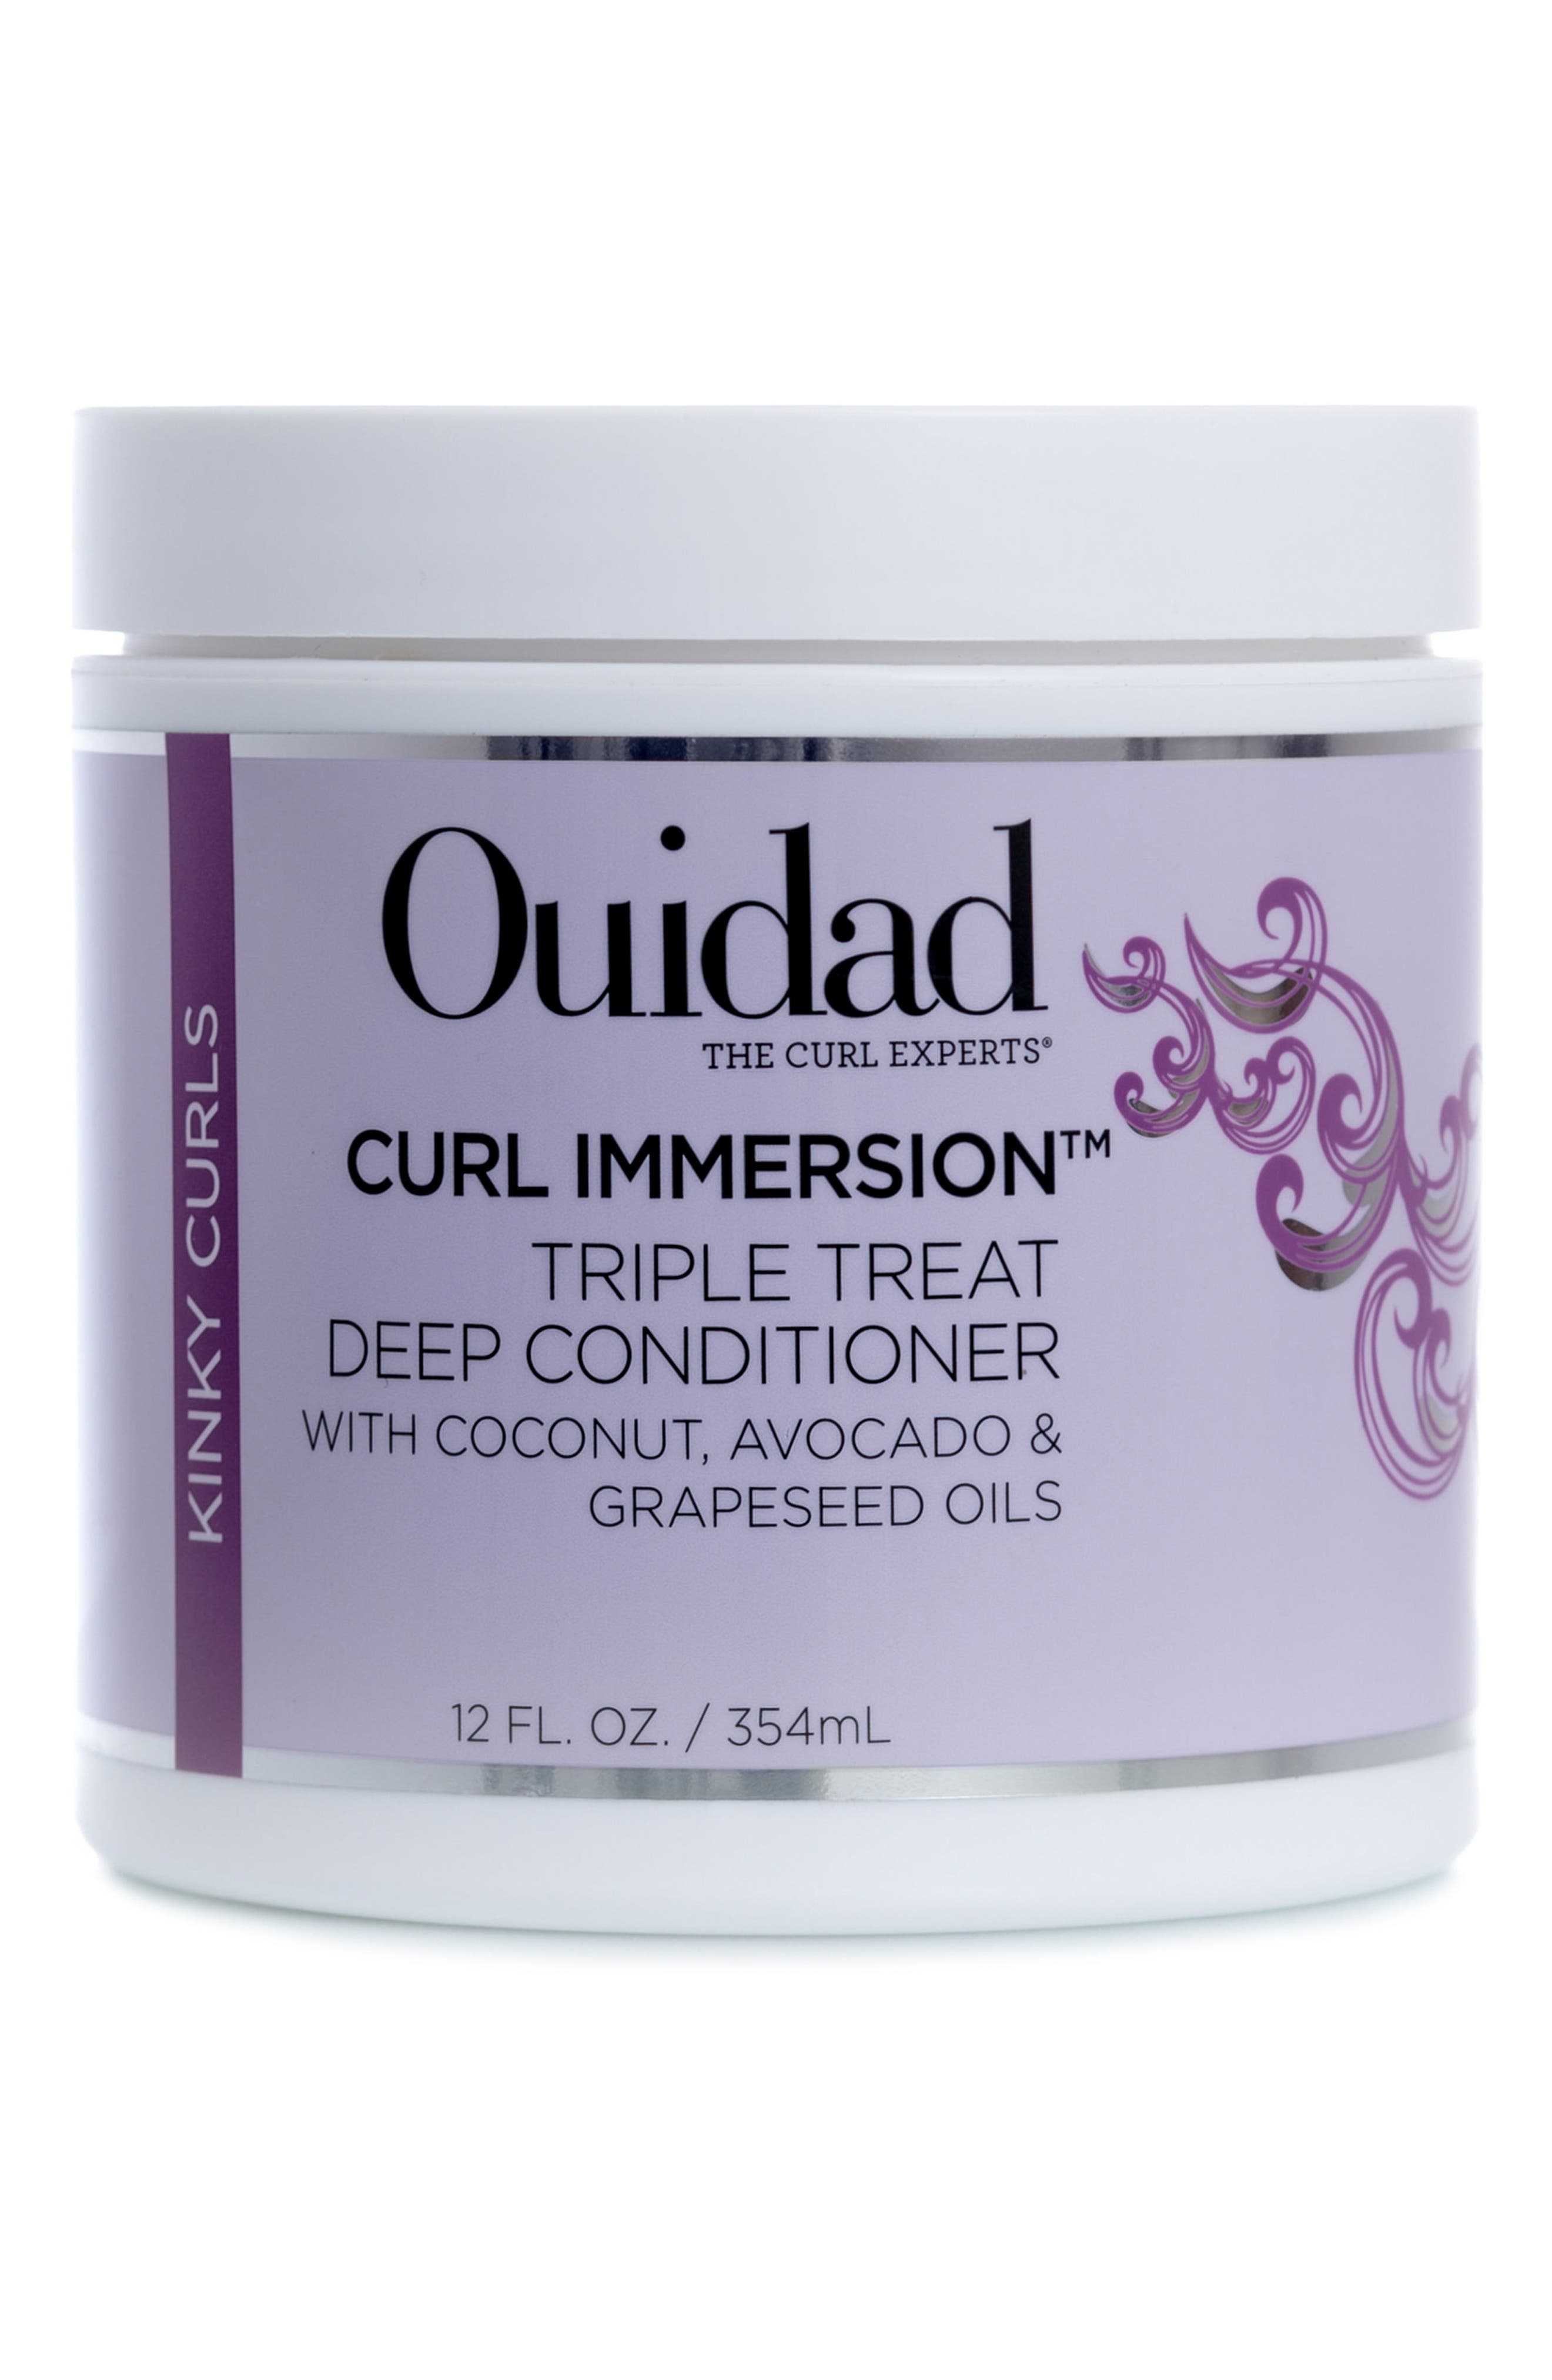 Ouidad Curl Immersion™ Triple Threat Deep Conditioner